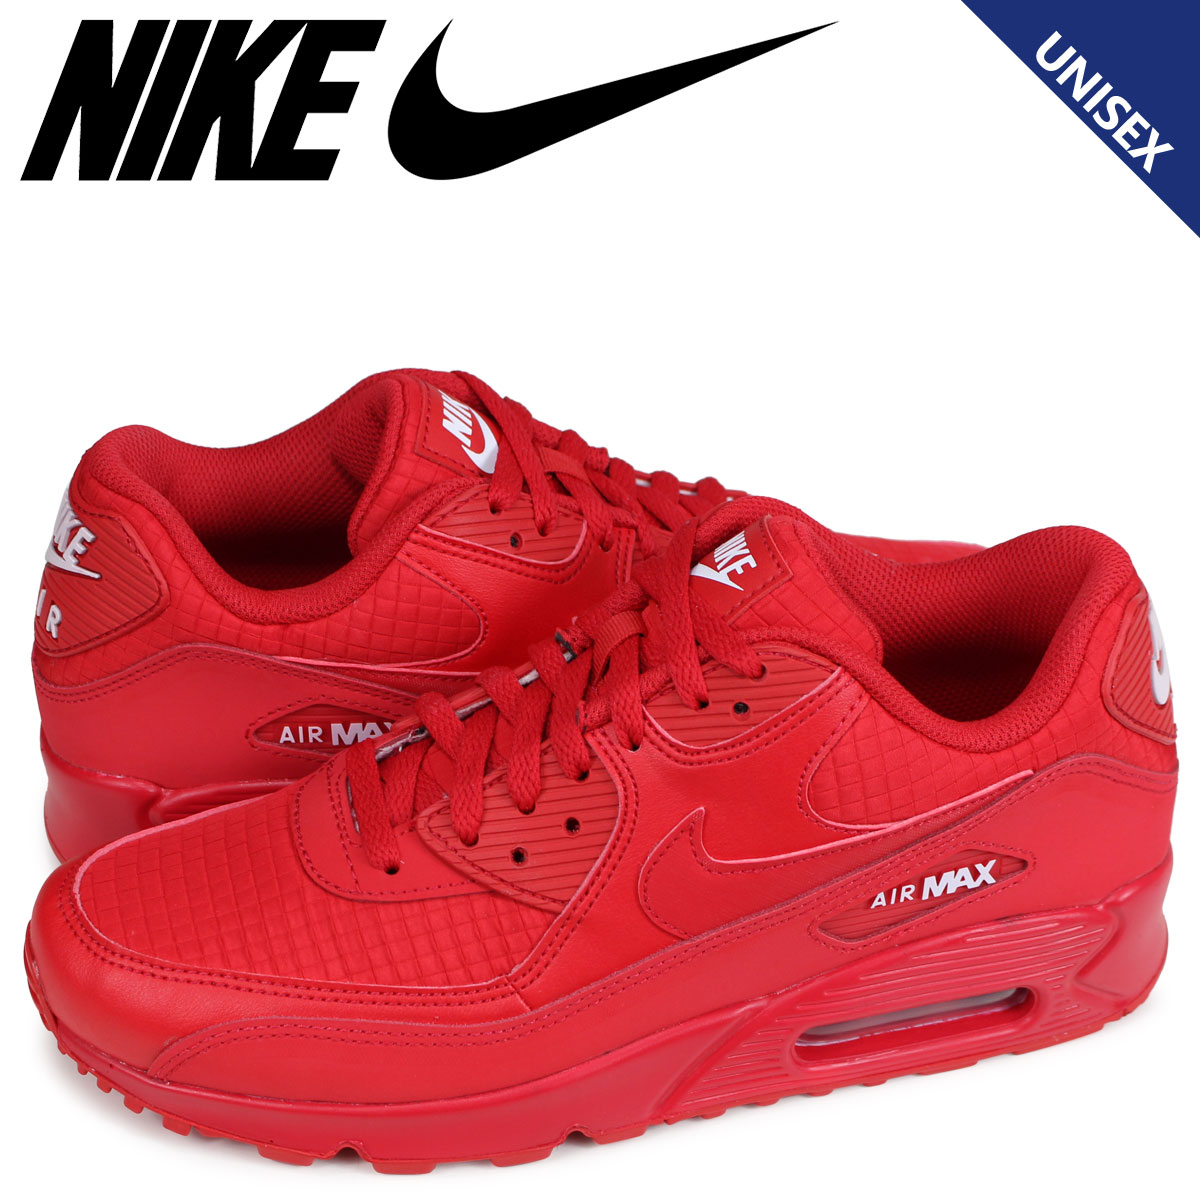 b9aae112ebdd NIKE AIR MAX 90 ESSENTIAL Kie Ney AMAX 90 essential sneakers men gap Dis  red AJ1285-602  5 15 reentry load